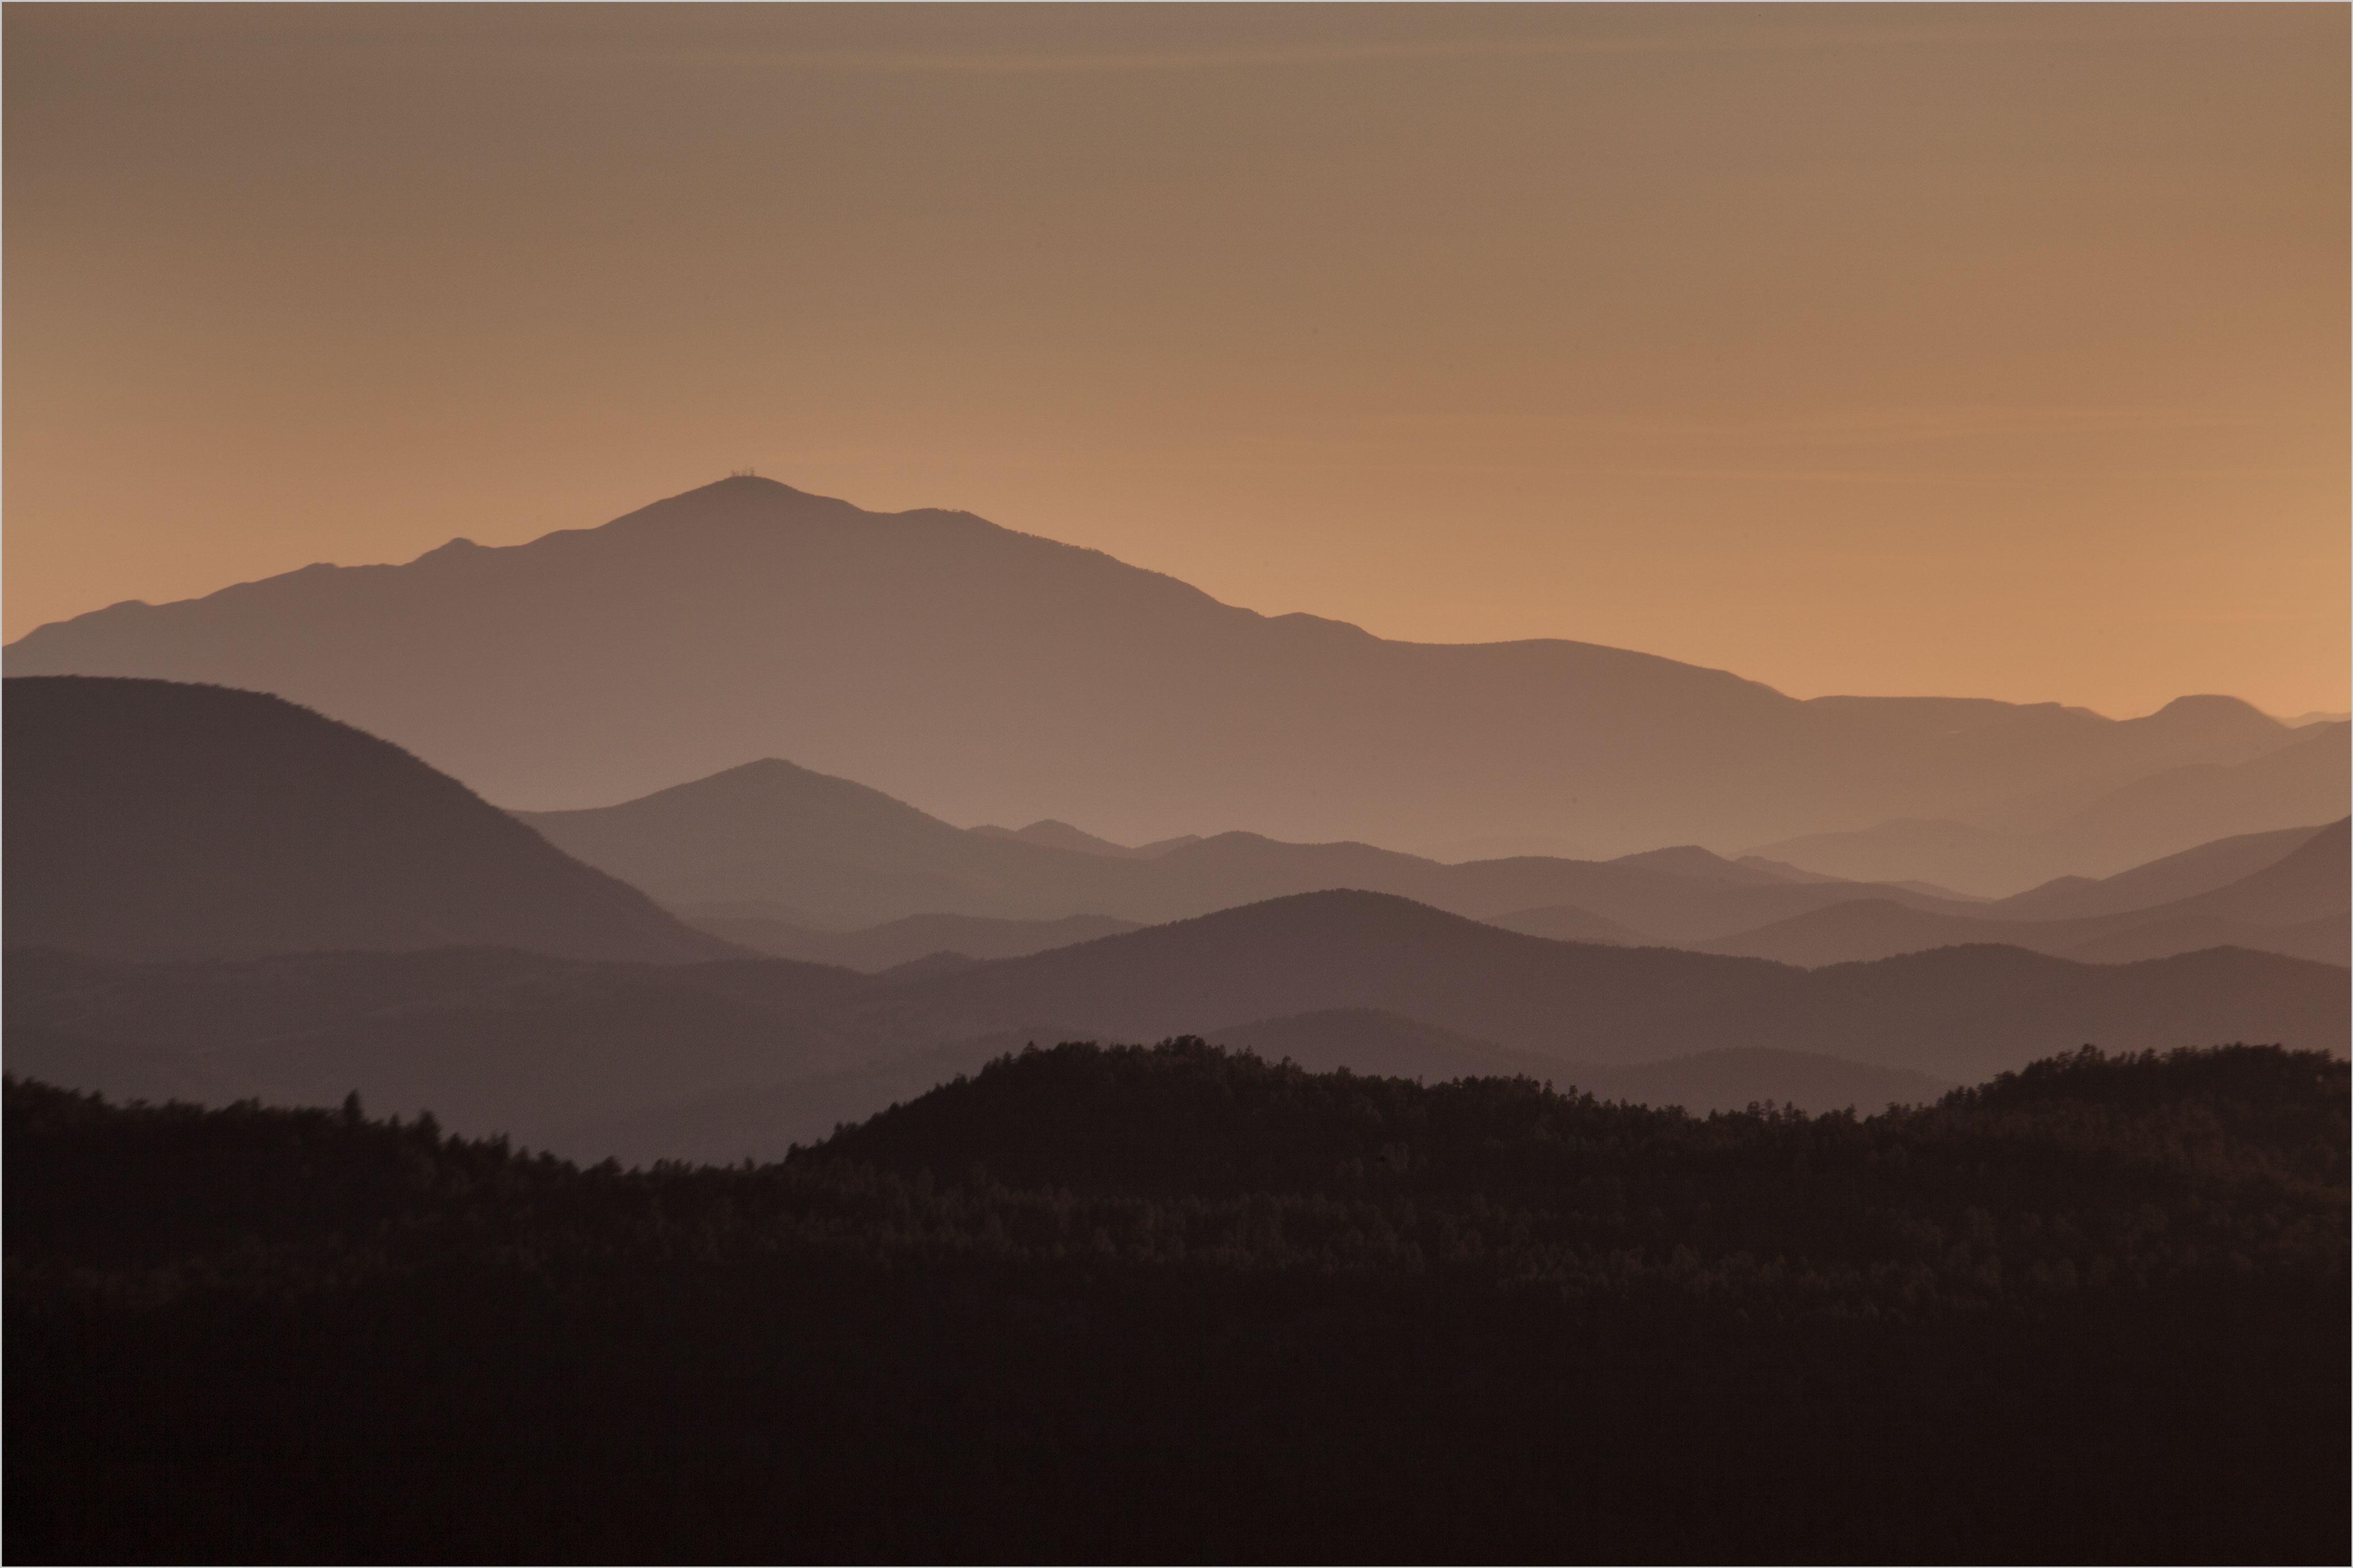 View from the Mogollon Rim, Arizona at sunset